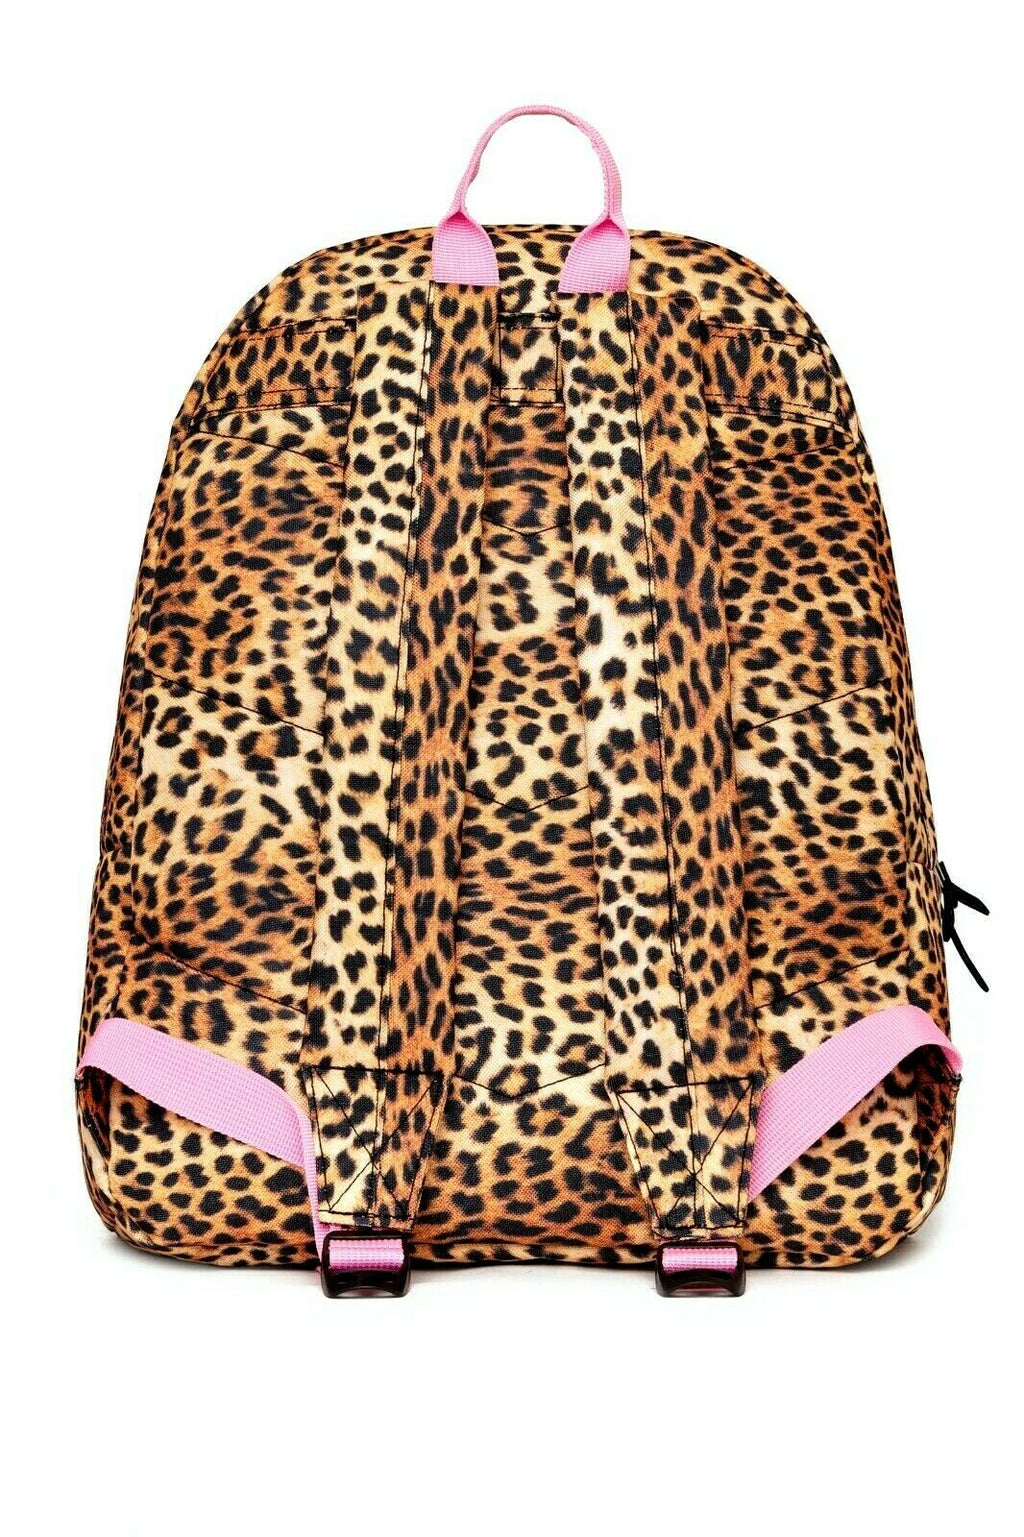 HYPE SPOT THE CHEETAH BACKPACK RUCKSACK BAG - MULTI